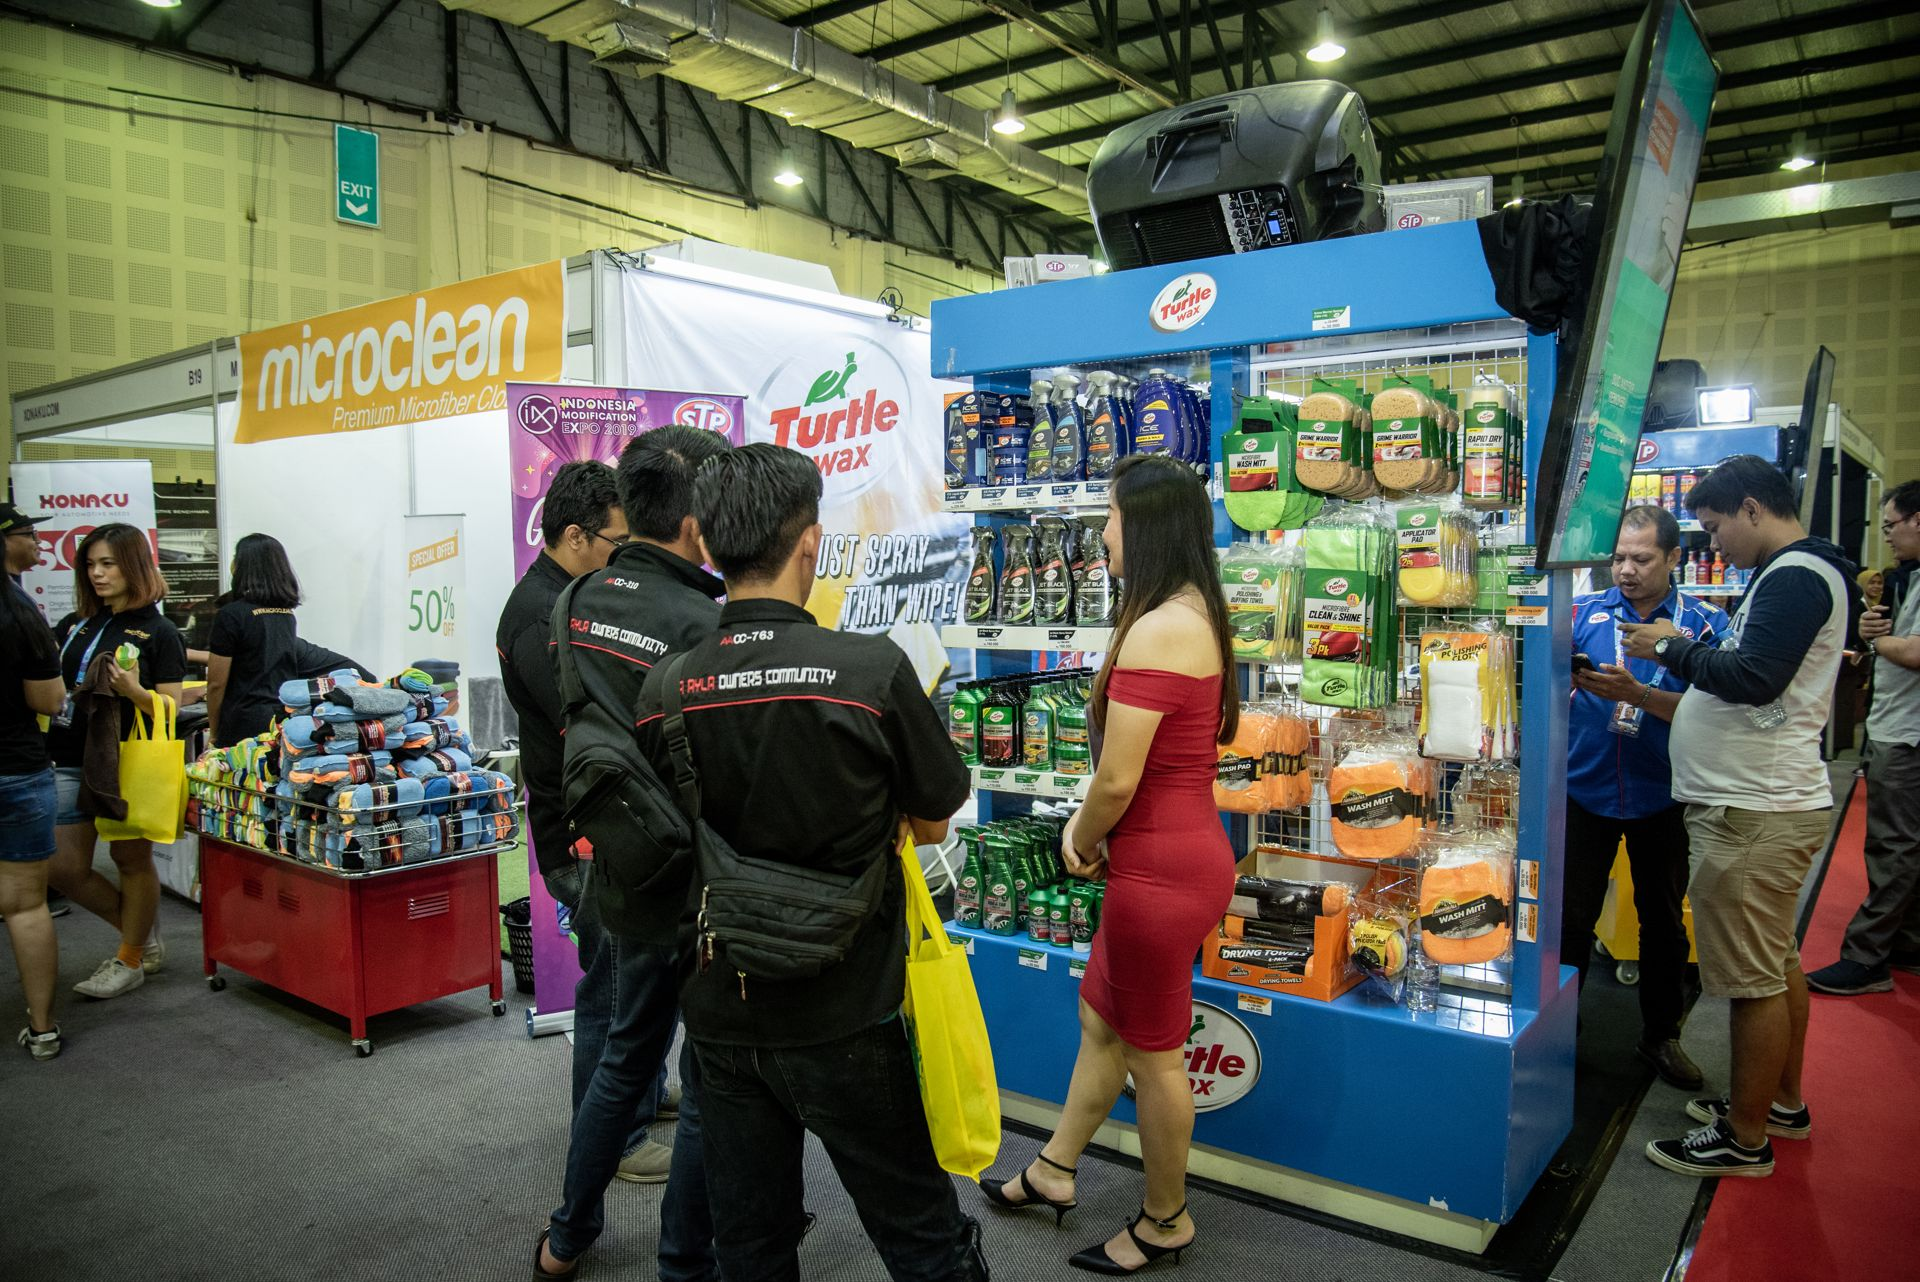 Imx aftermarket expo 2019 (42)